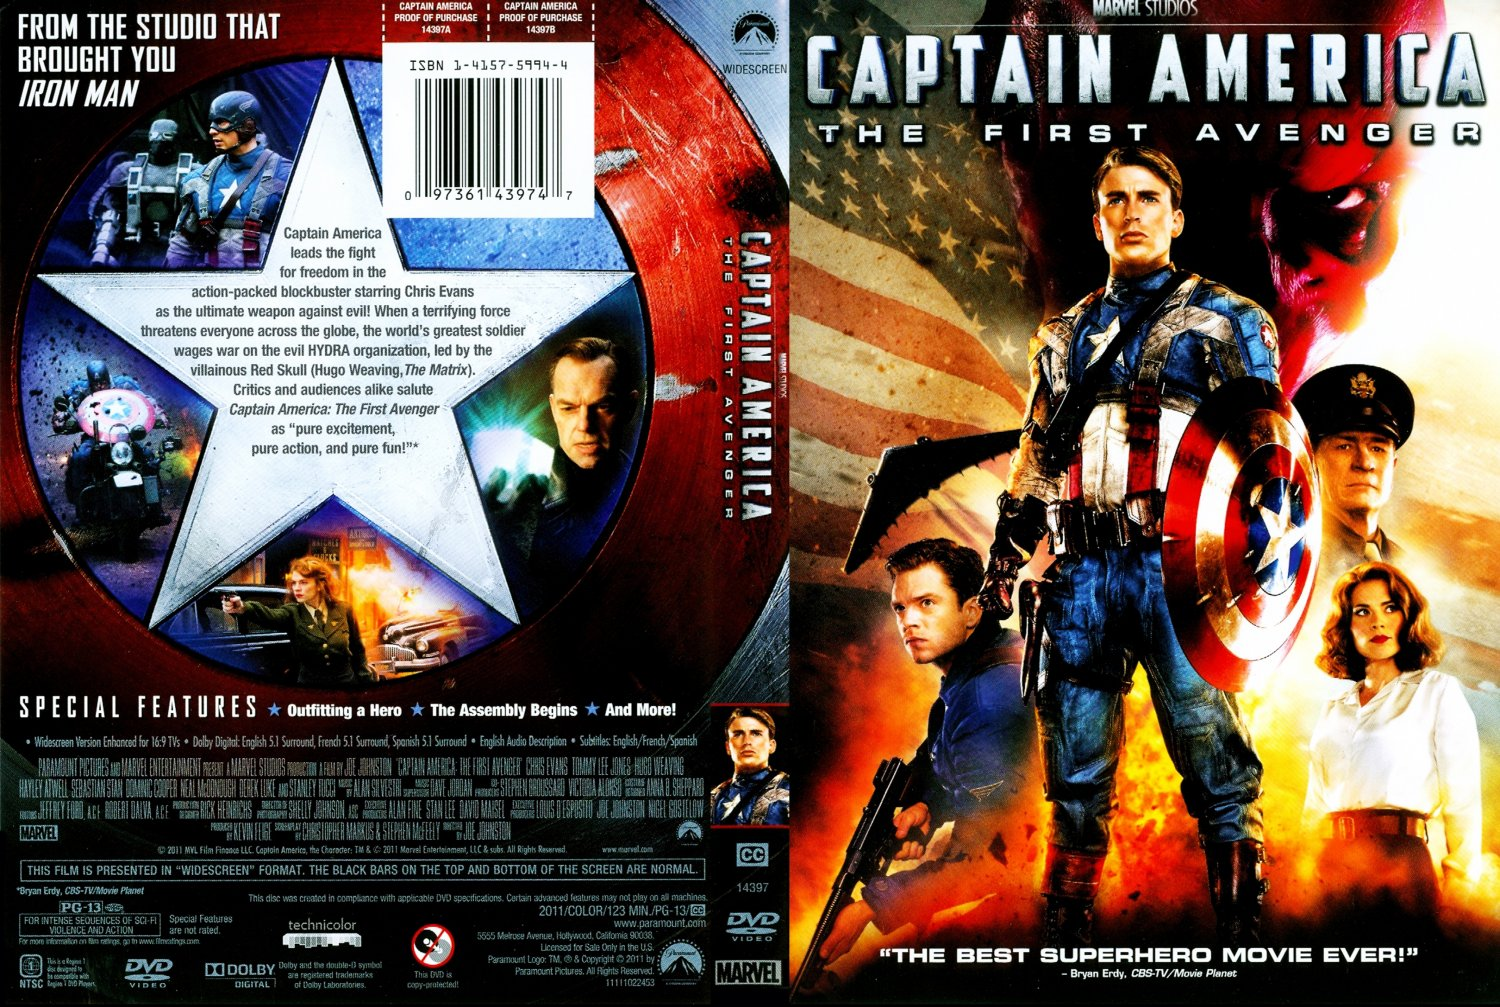 america the first avenger captain america the first avenger date 10 31